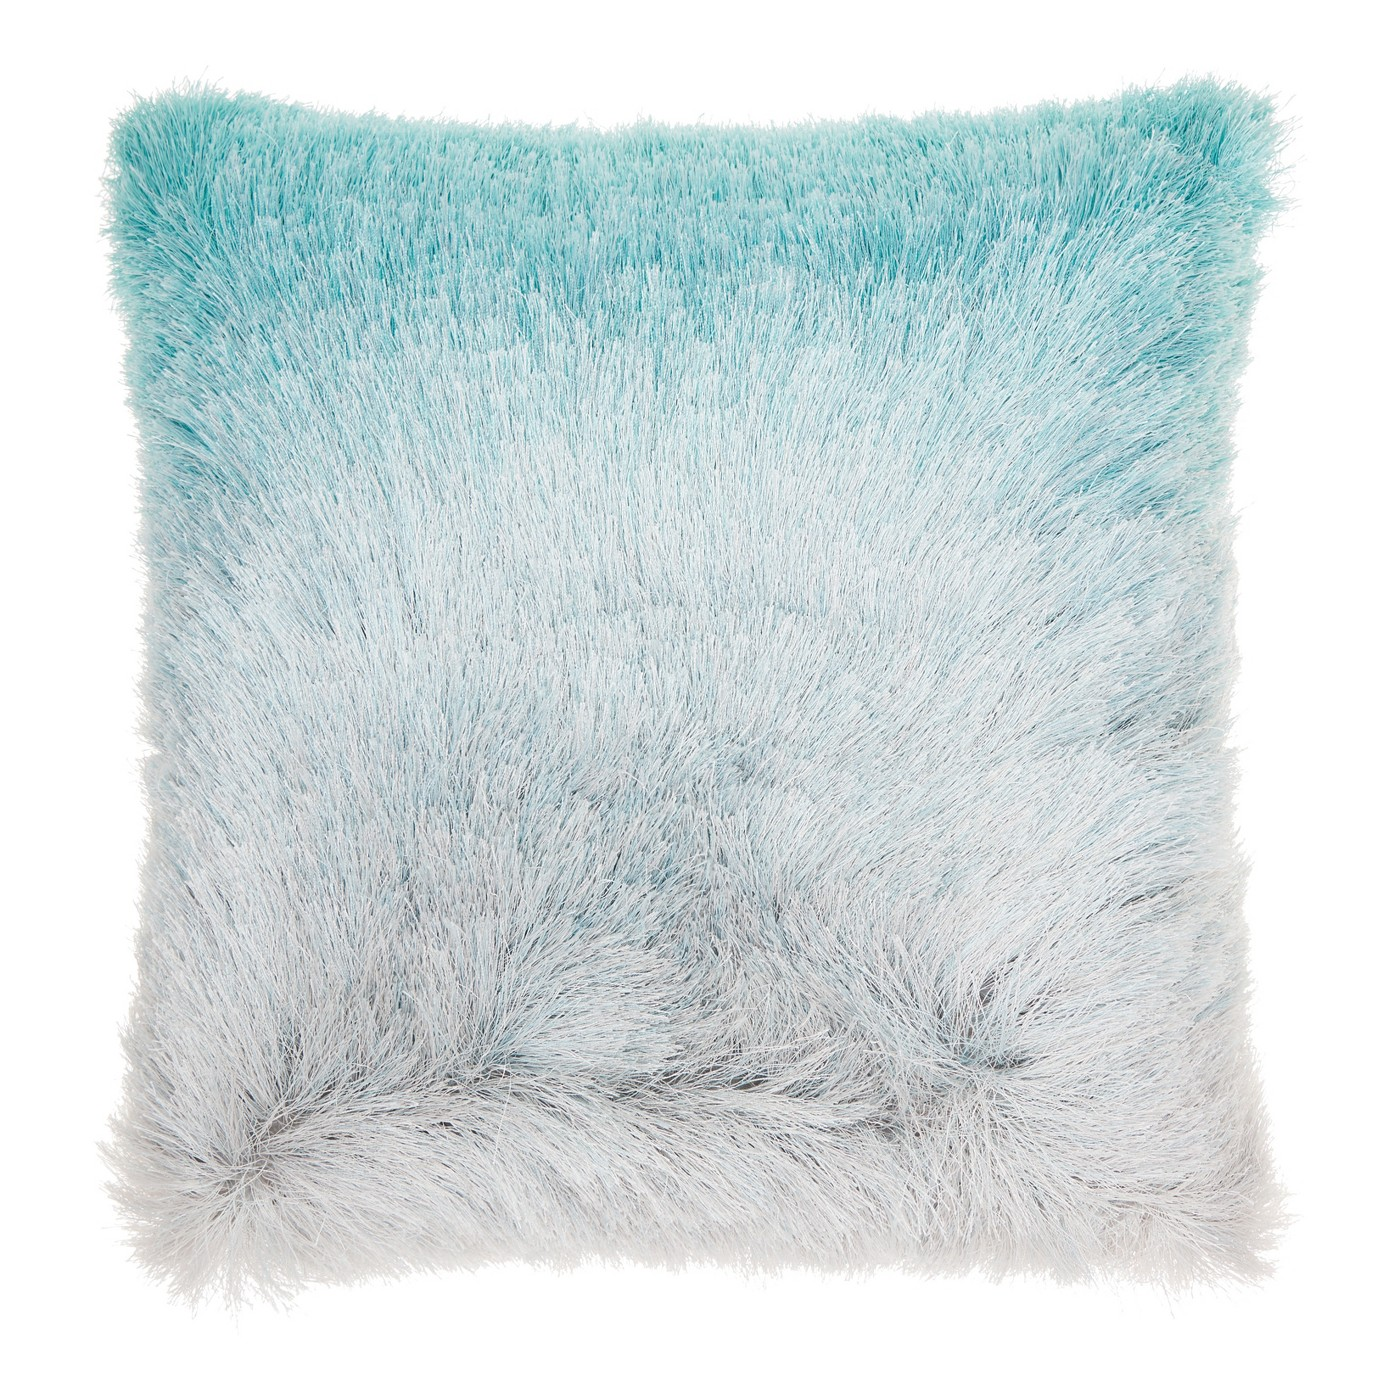 Teal Faux Fur Pillow